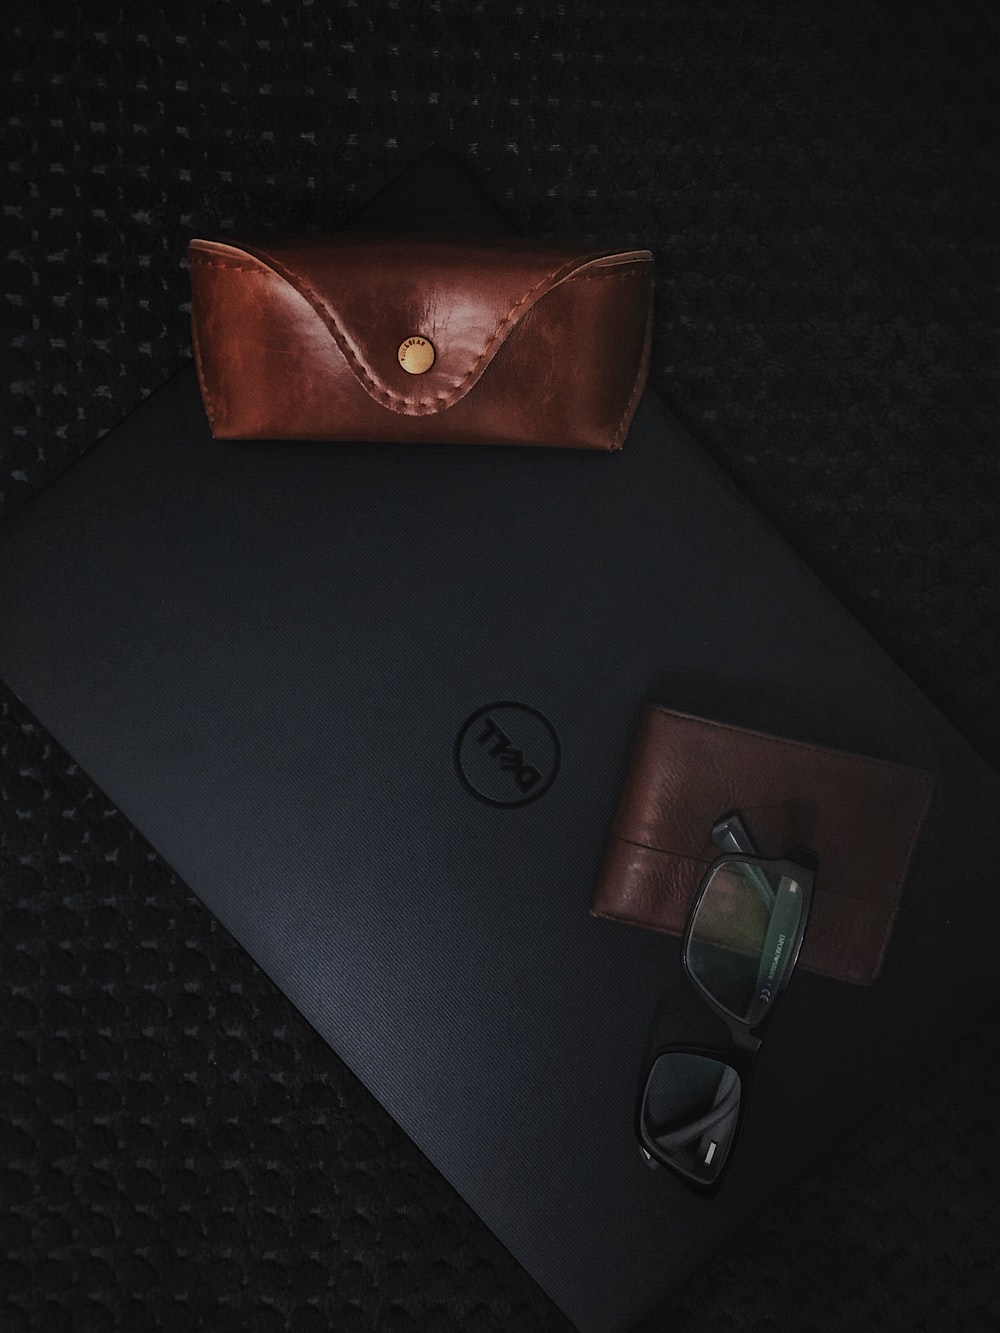 clear eyeglasses on Dell laptop computer